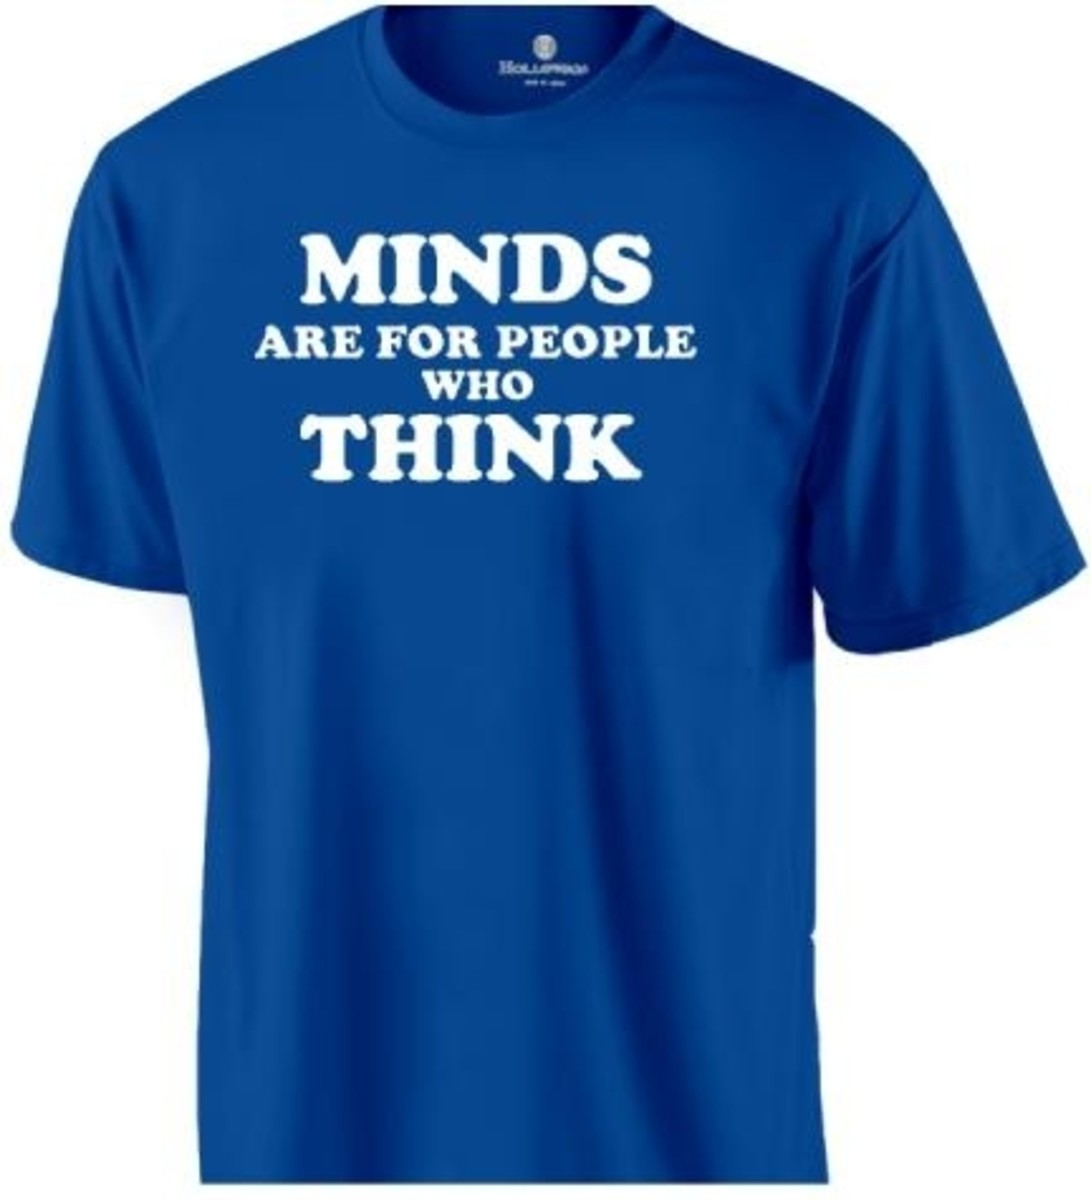 """Minds are for people who think"" reproduction of a Howlin Mad t-shirt"